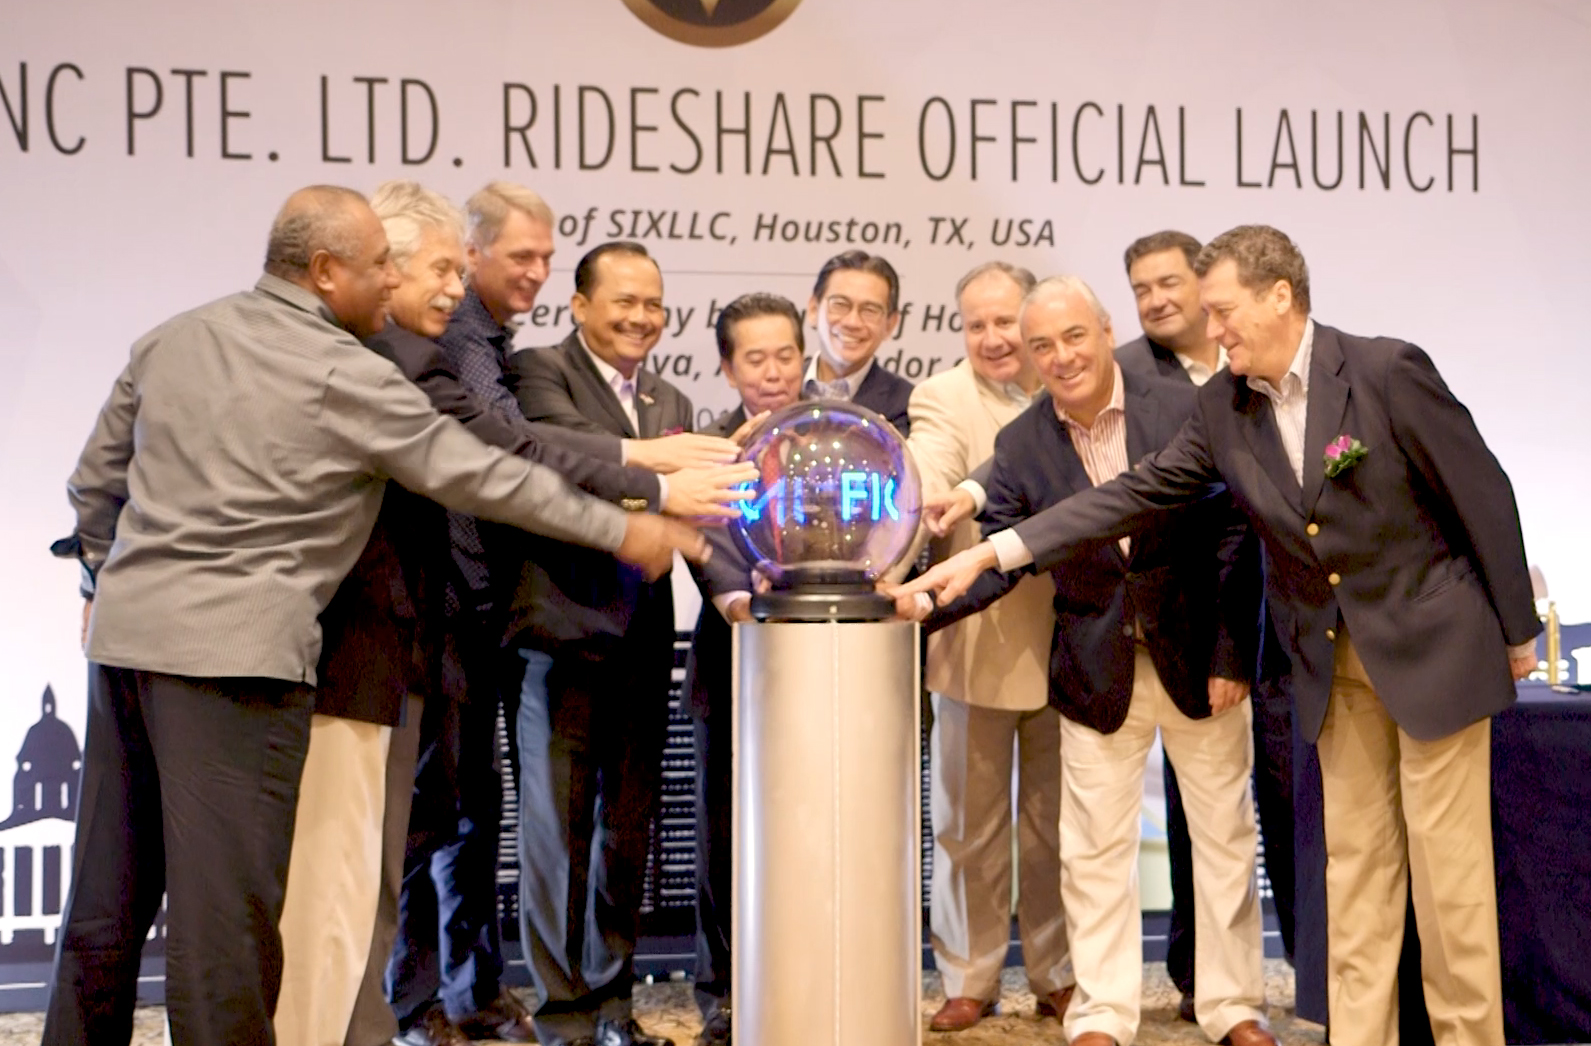 Rideshare Official Launch